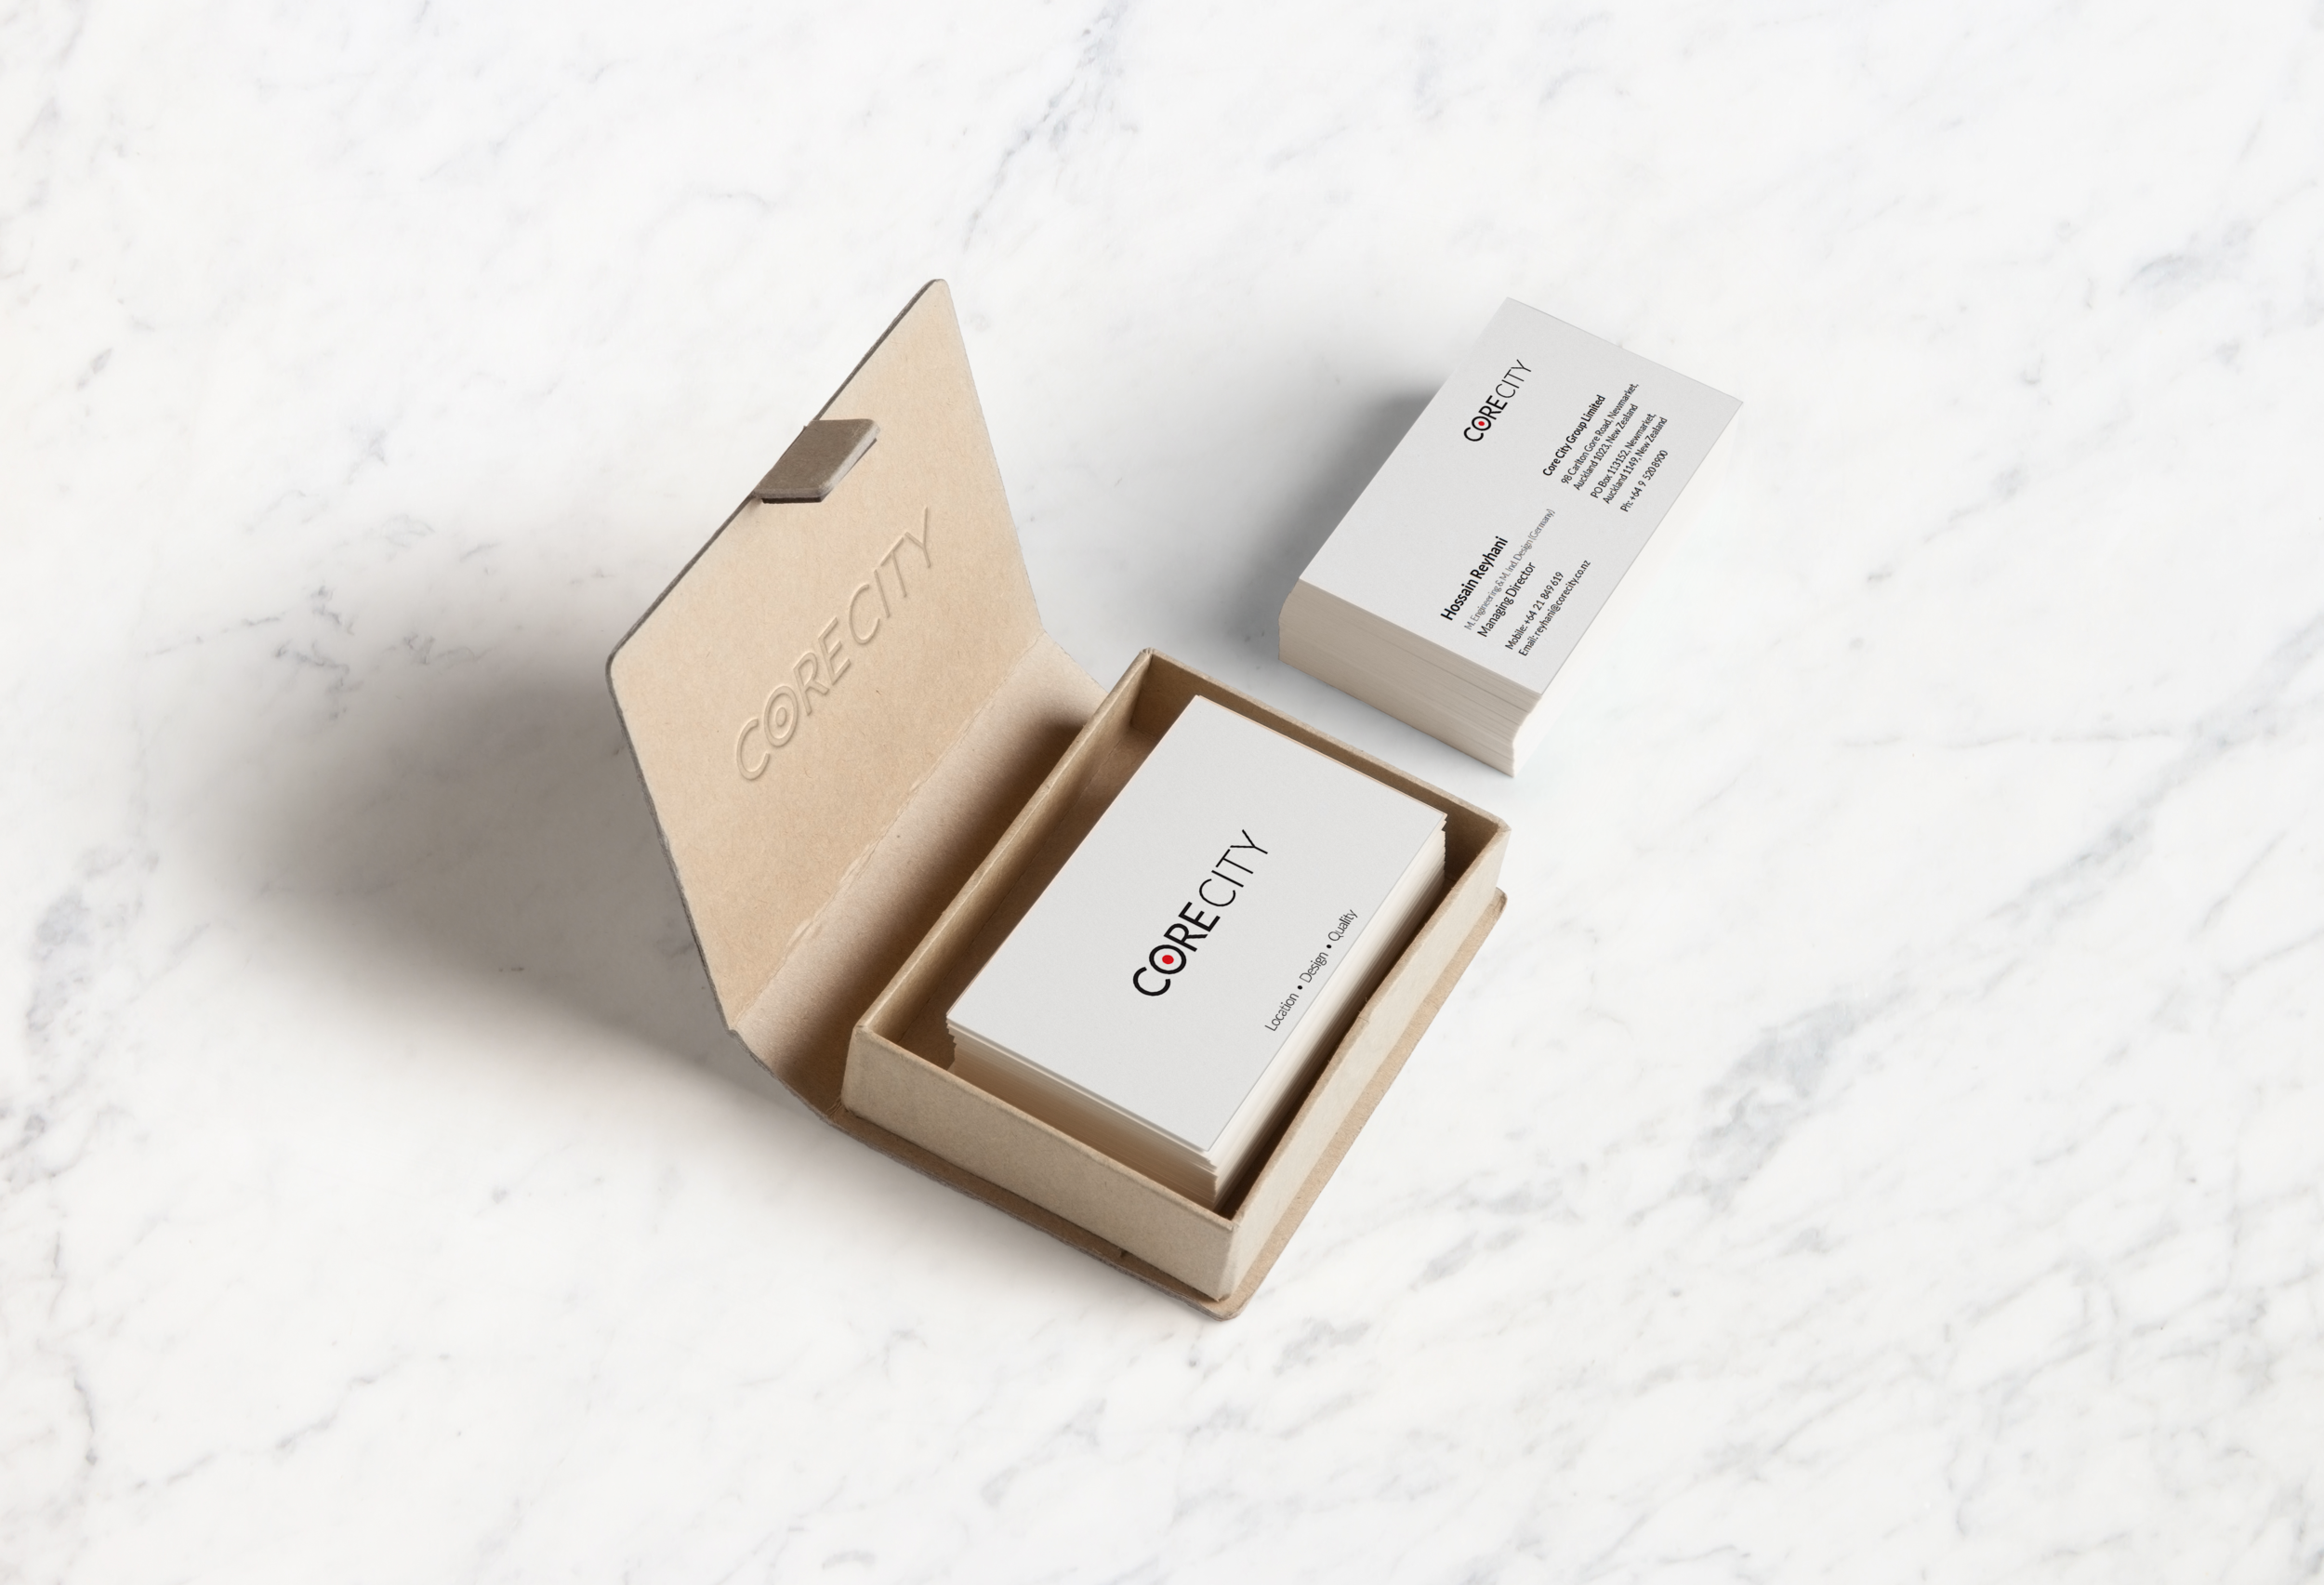 Business cards displayed in a card holder box